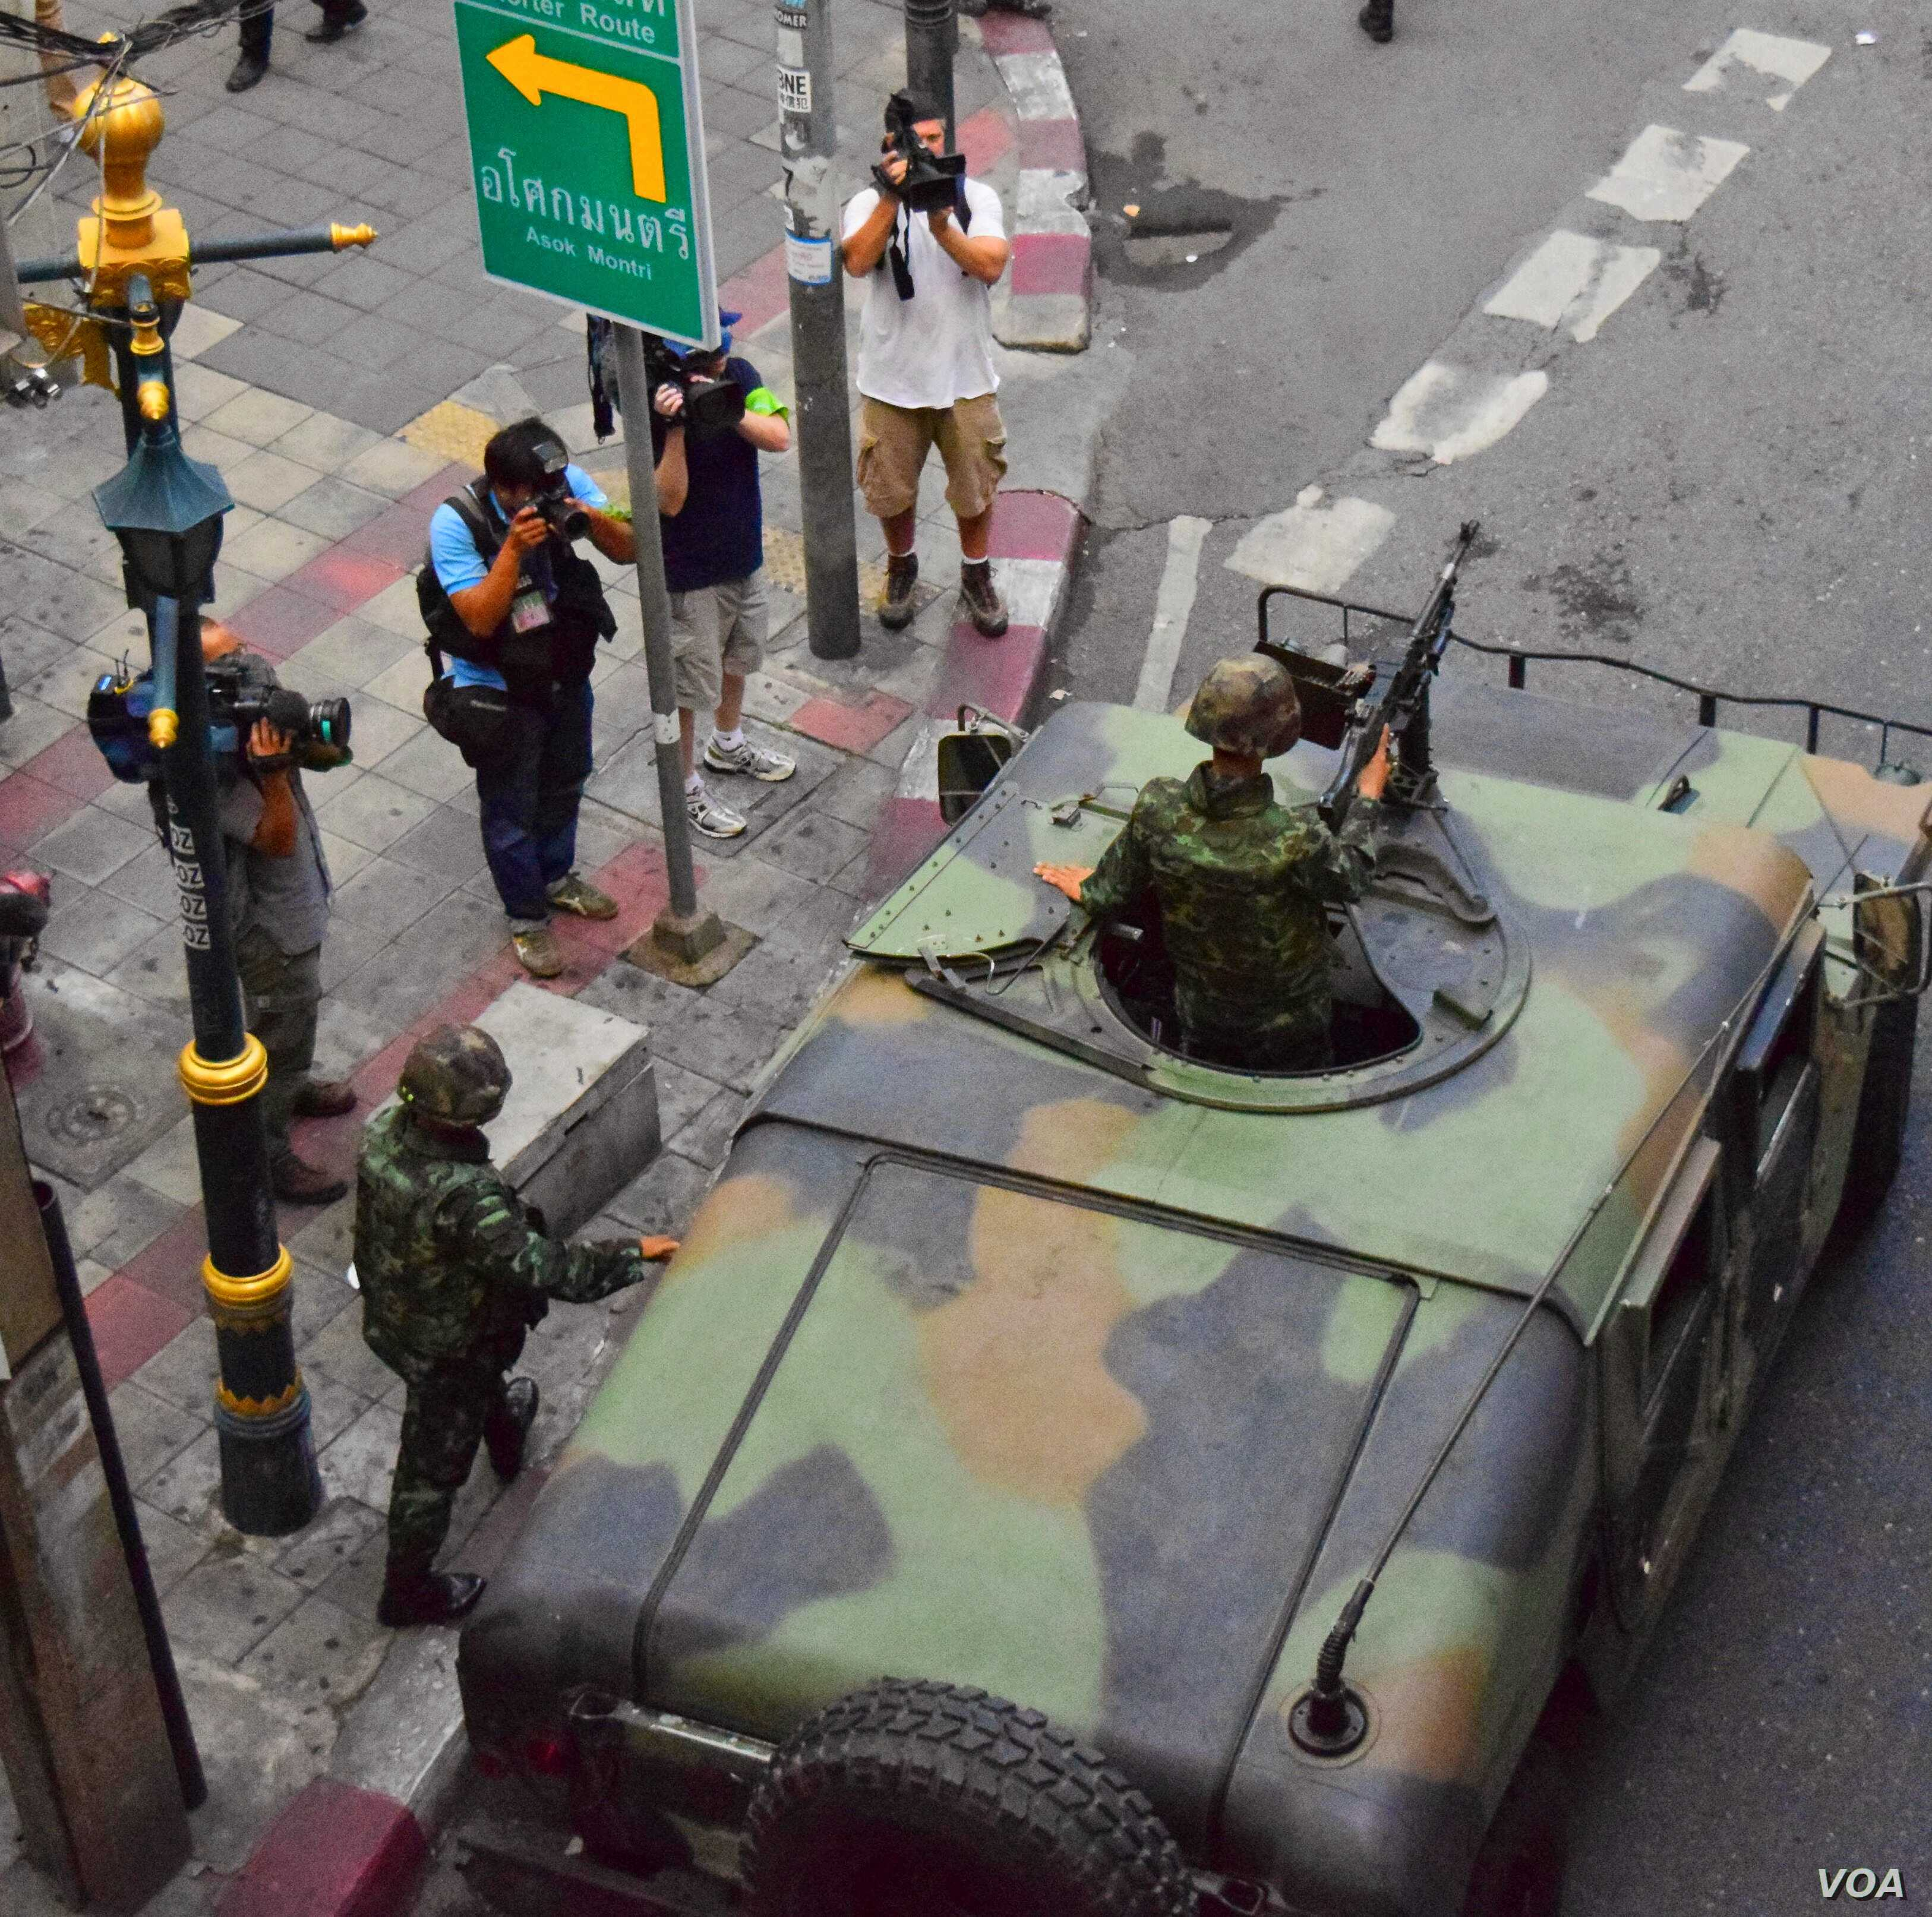 An armored vehicle rolls through the intersection adjacent to where a small anti-coup rally occurred in Bangkok, Thailand, June 1, 2014. (Steve Herman/VOA)